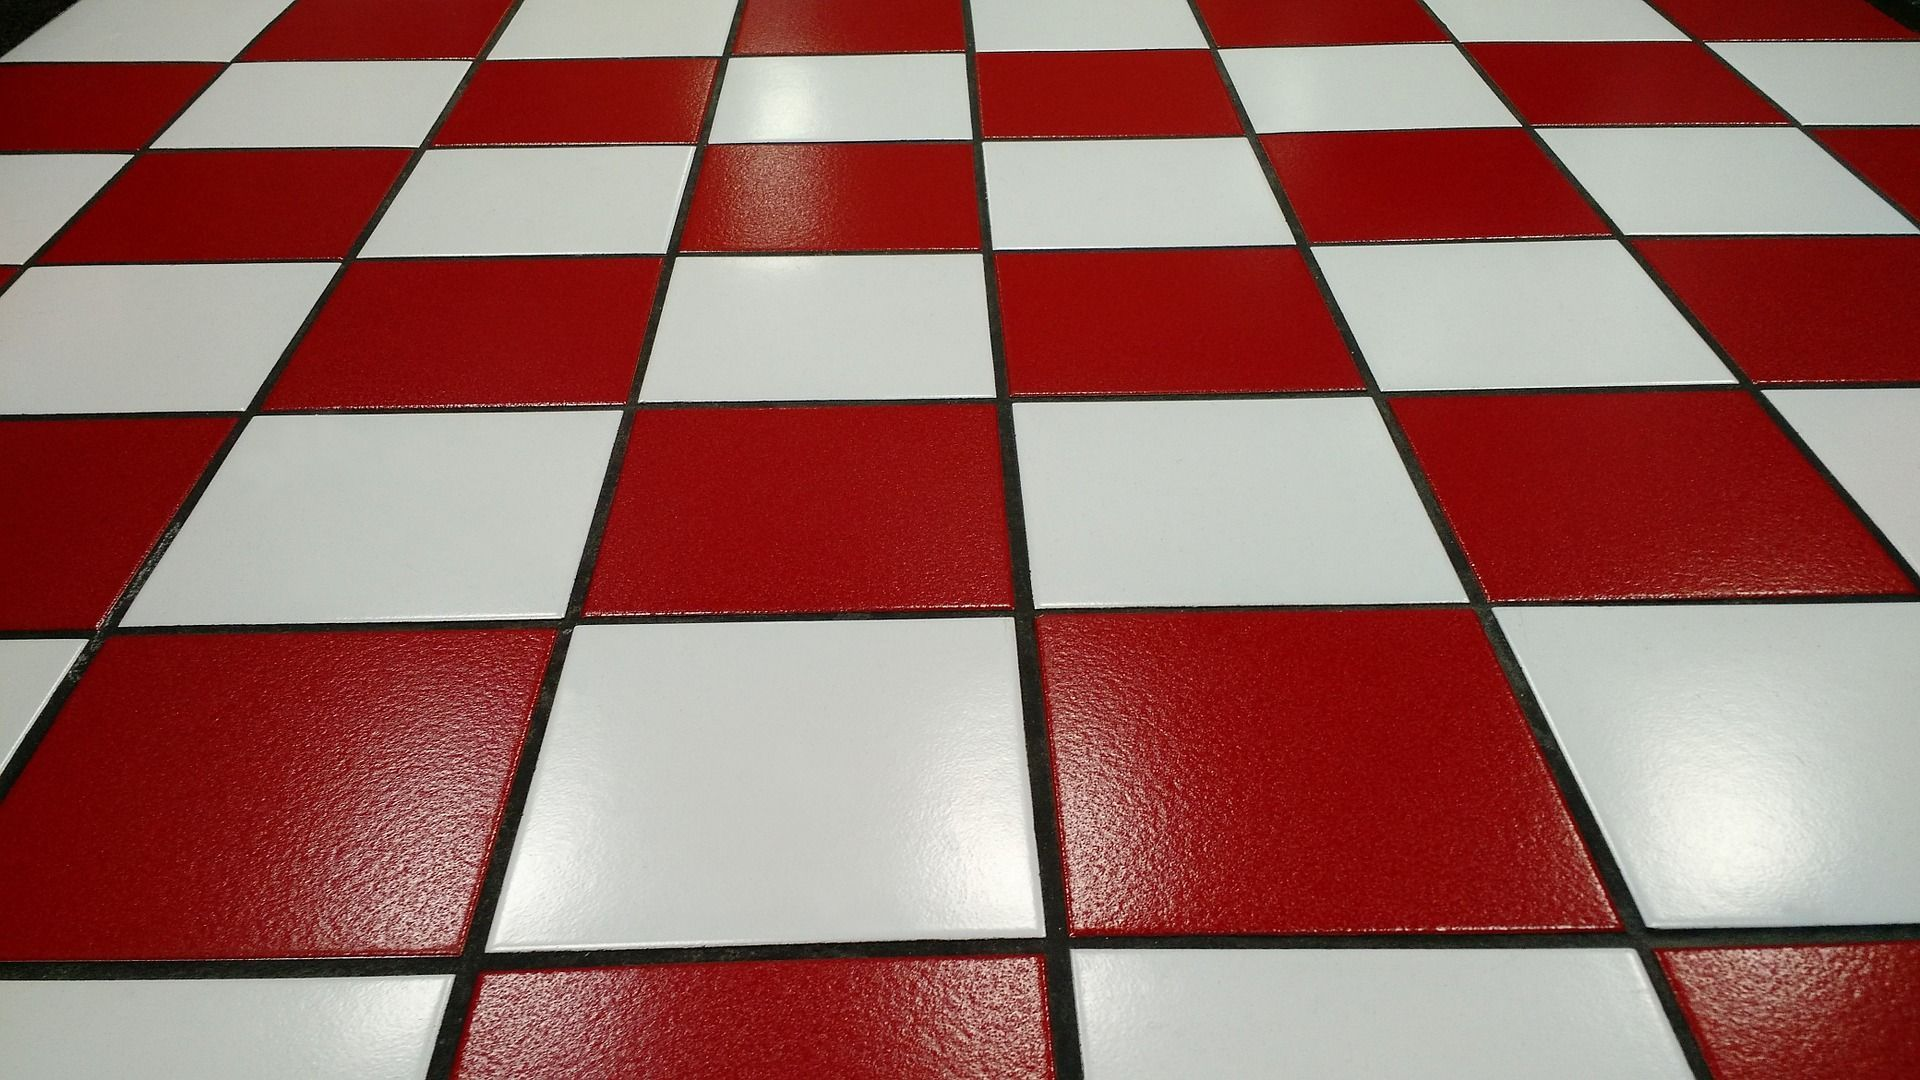 Things that you should not spill on your tile floor